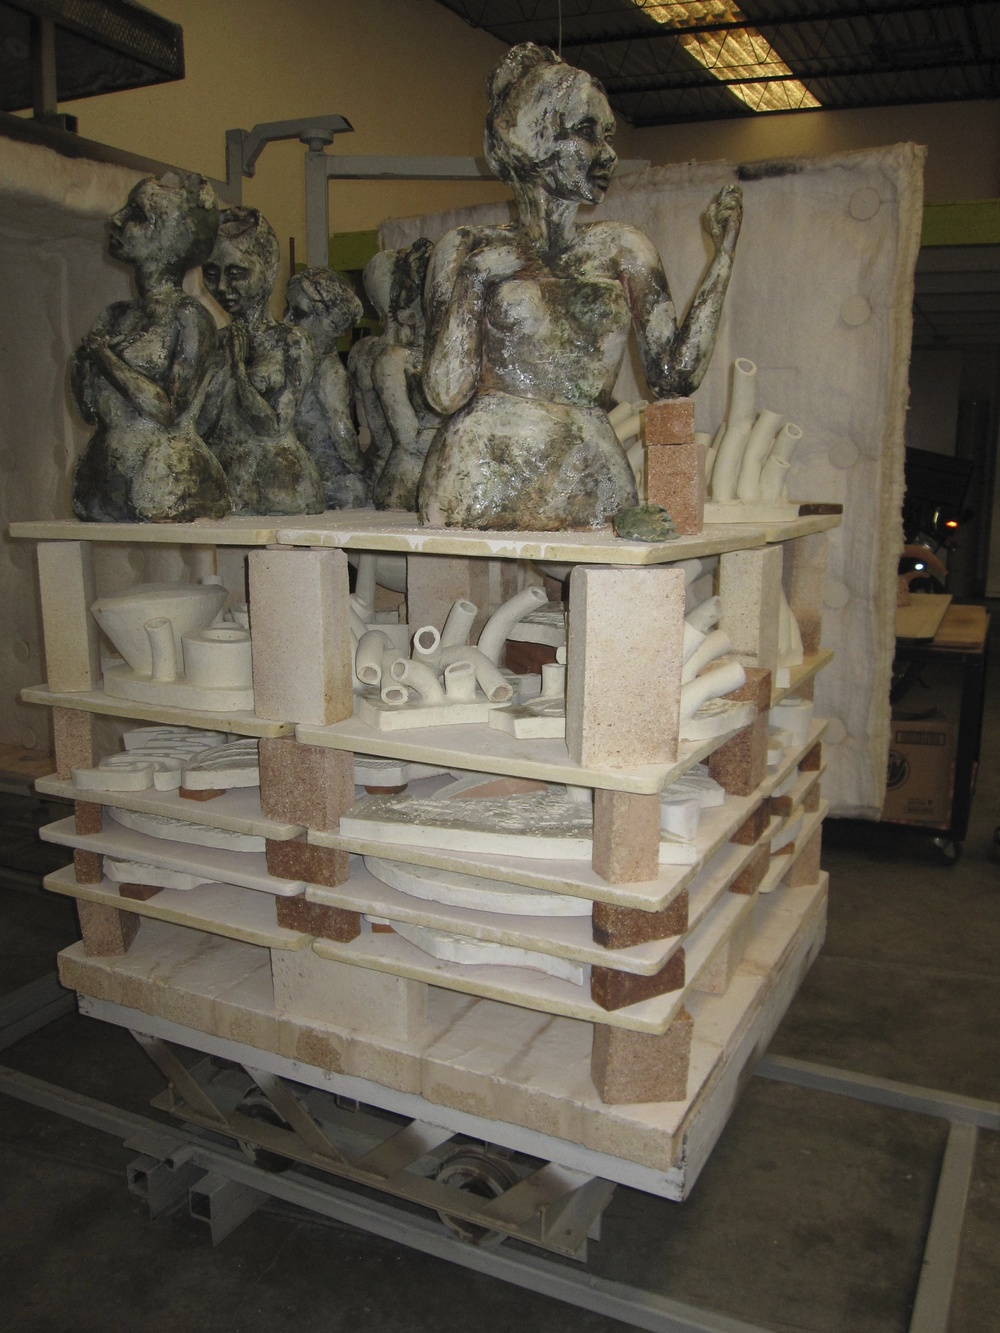 kiln ready to unload - female figure sculptures by Annie Evans